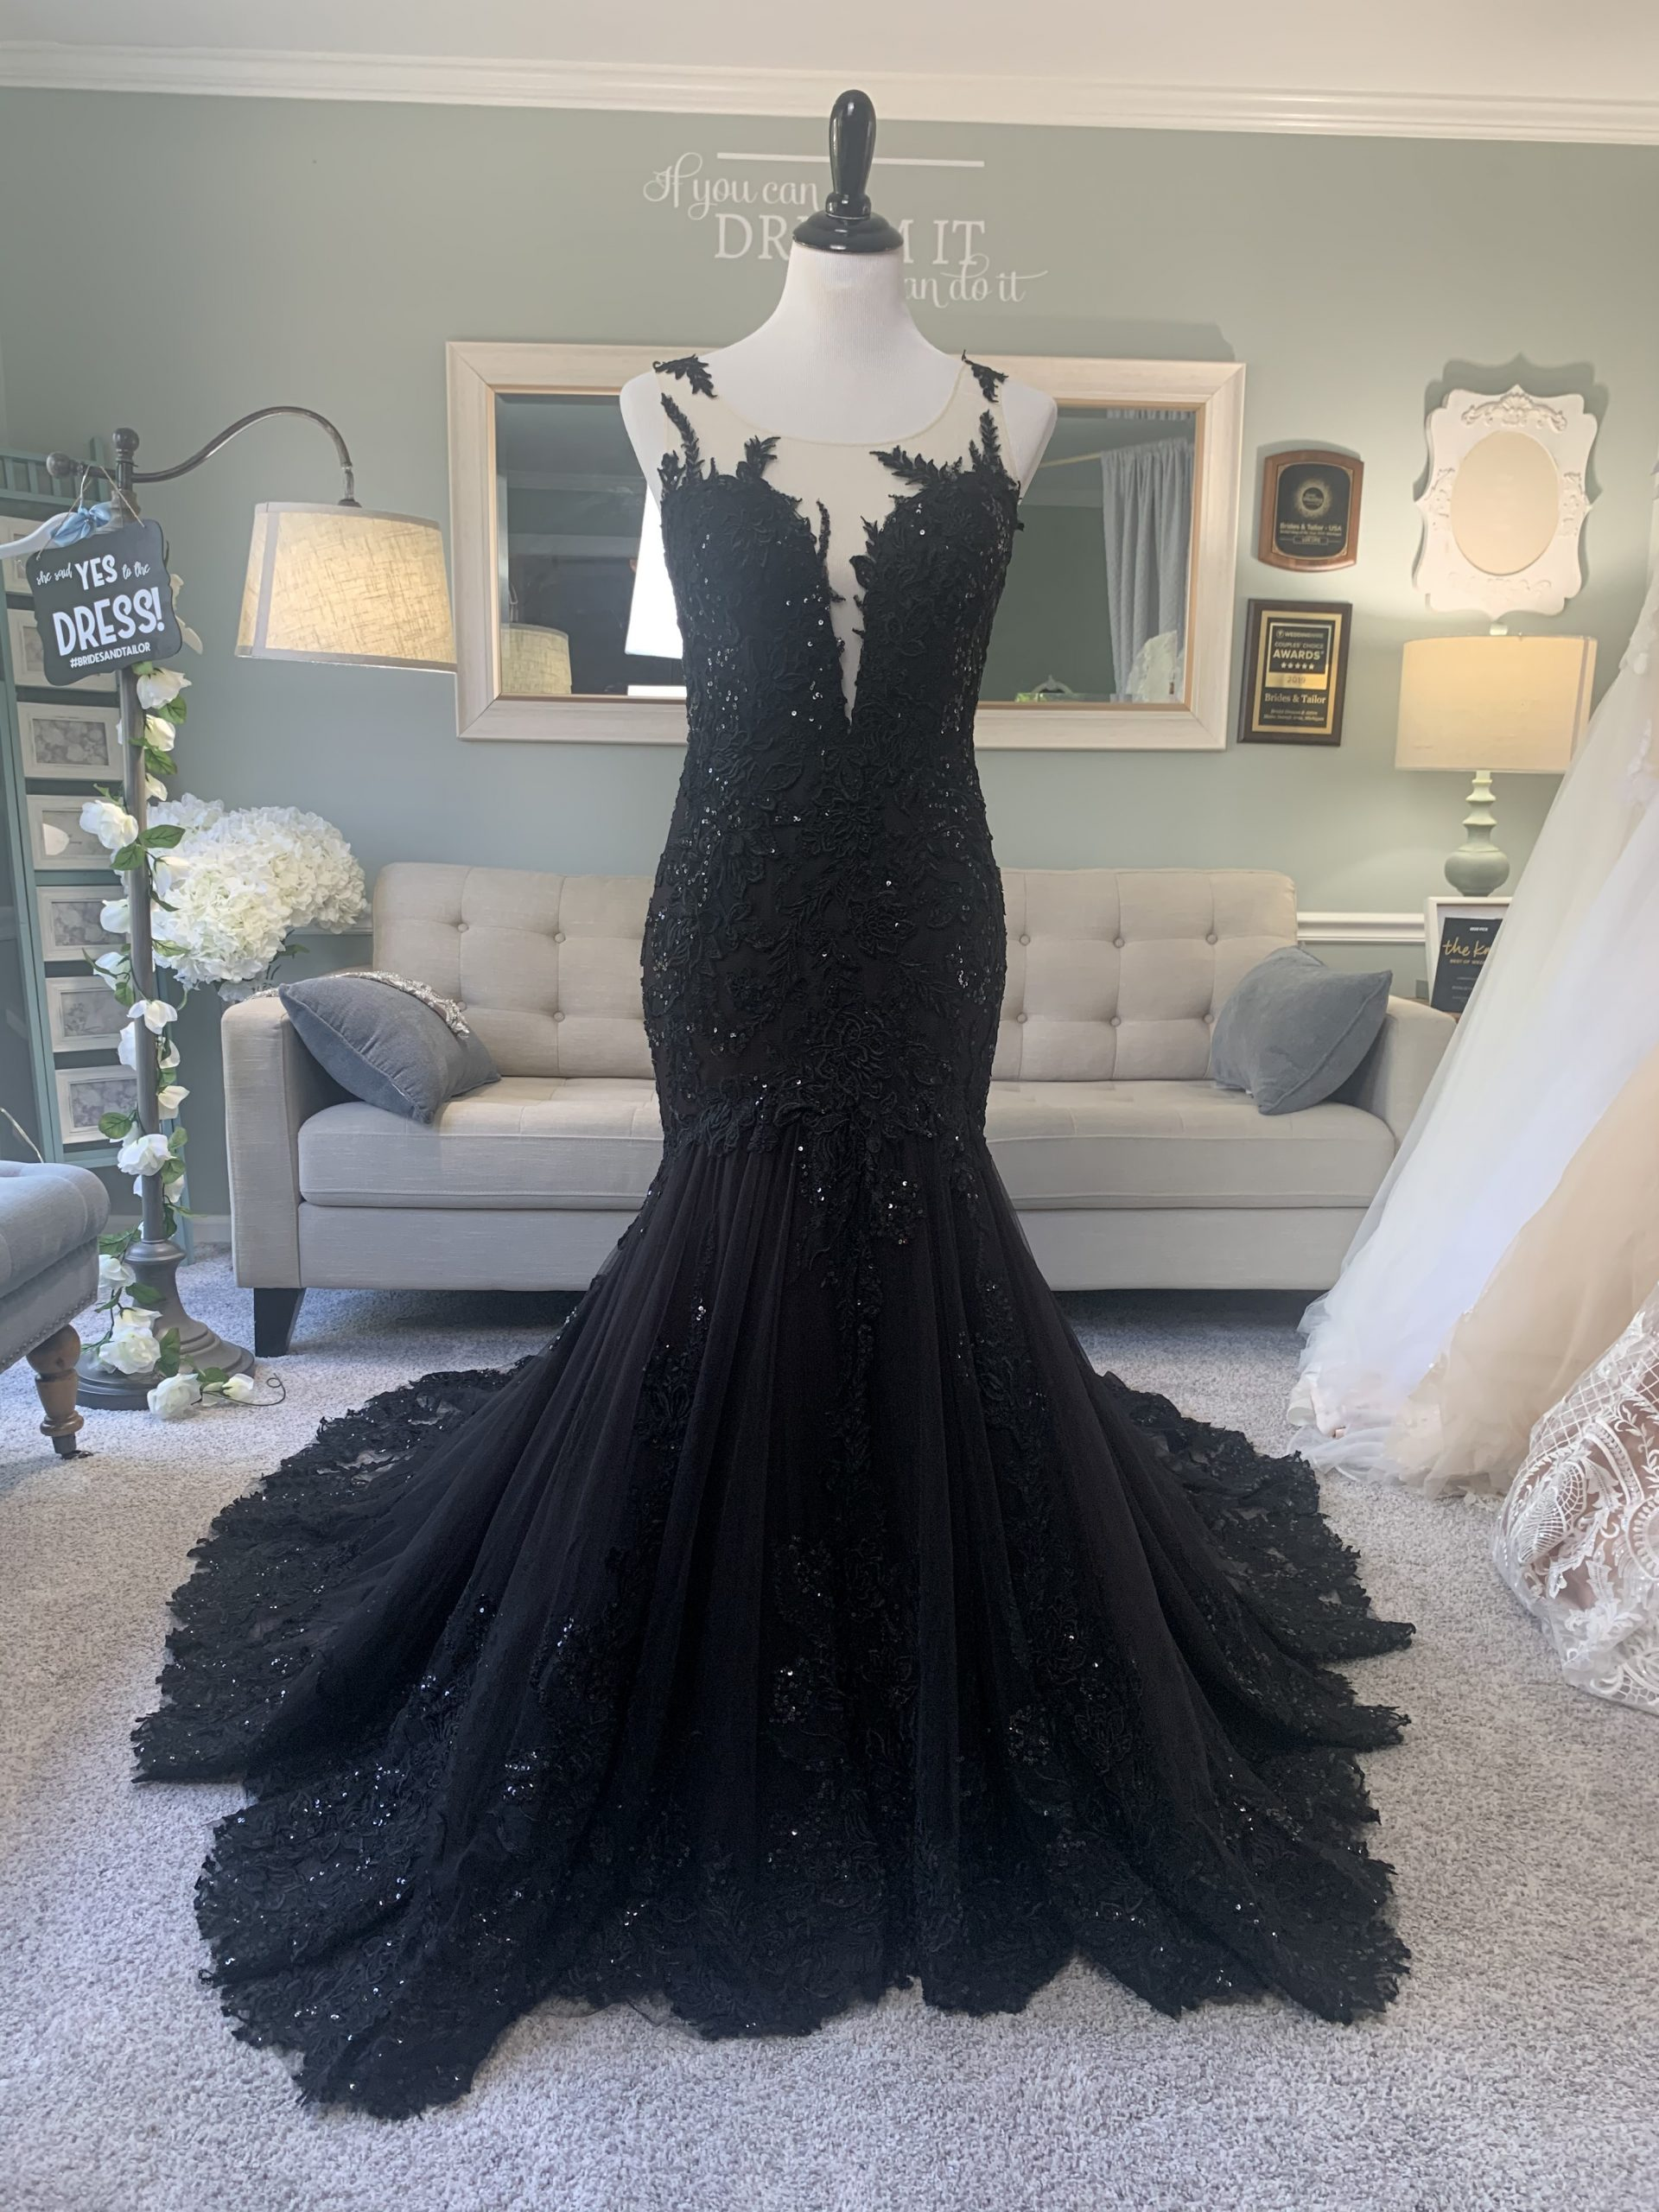 Mermaid Black Wedding Dress With Illusion Back By Brides Tailor Brides Tailor